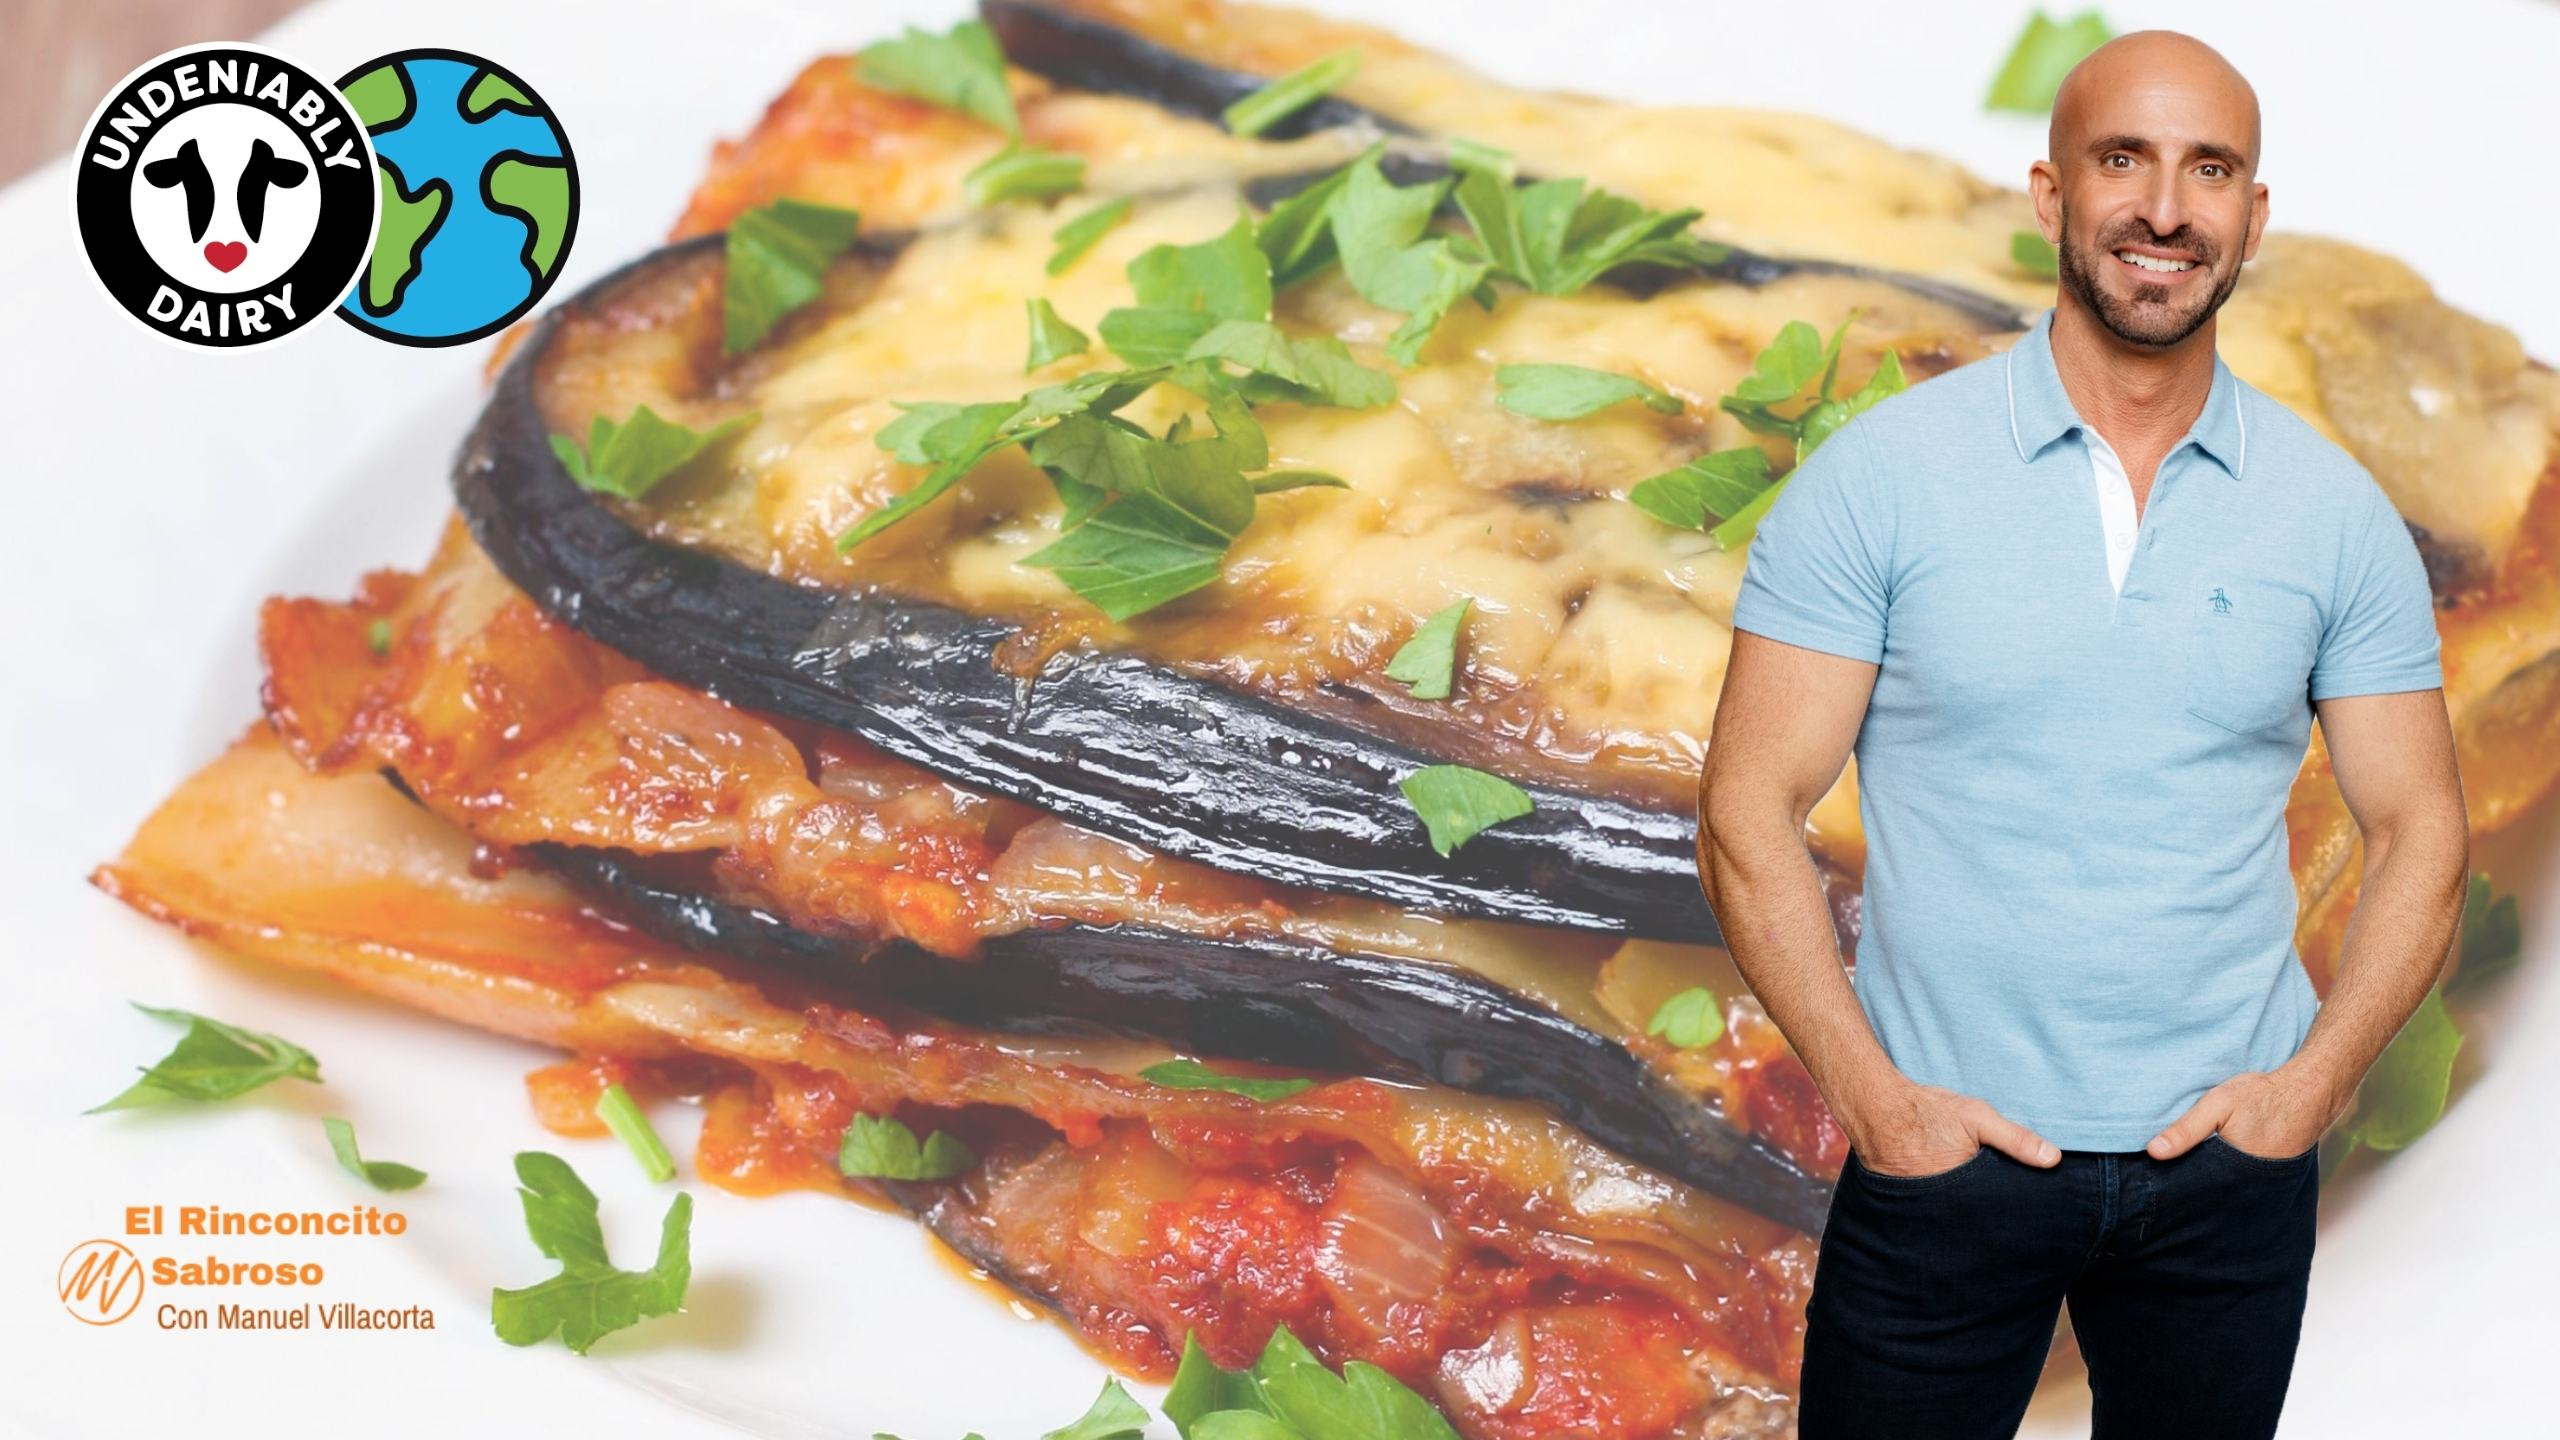 How to Make a Nutritious, Budget-Friendly & Delicious Plant-Based Cheese Lasagna